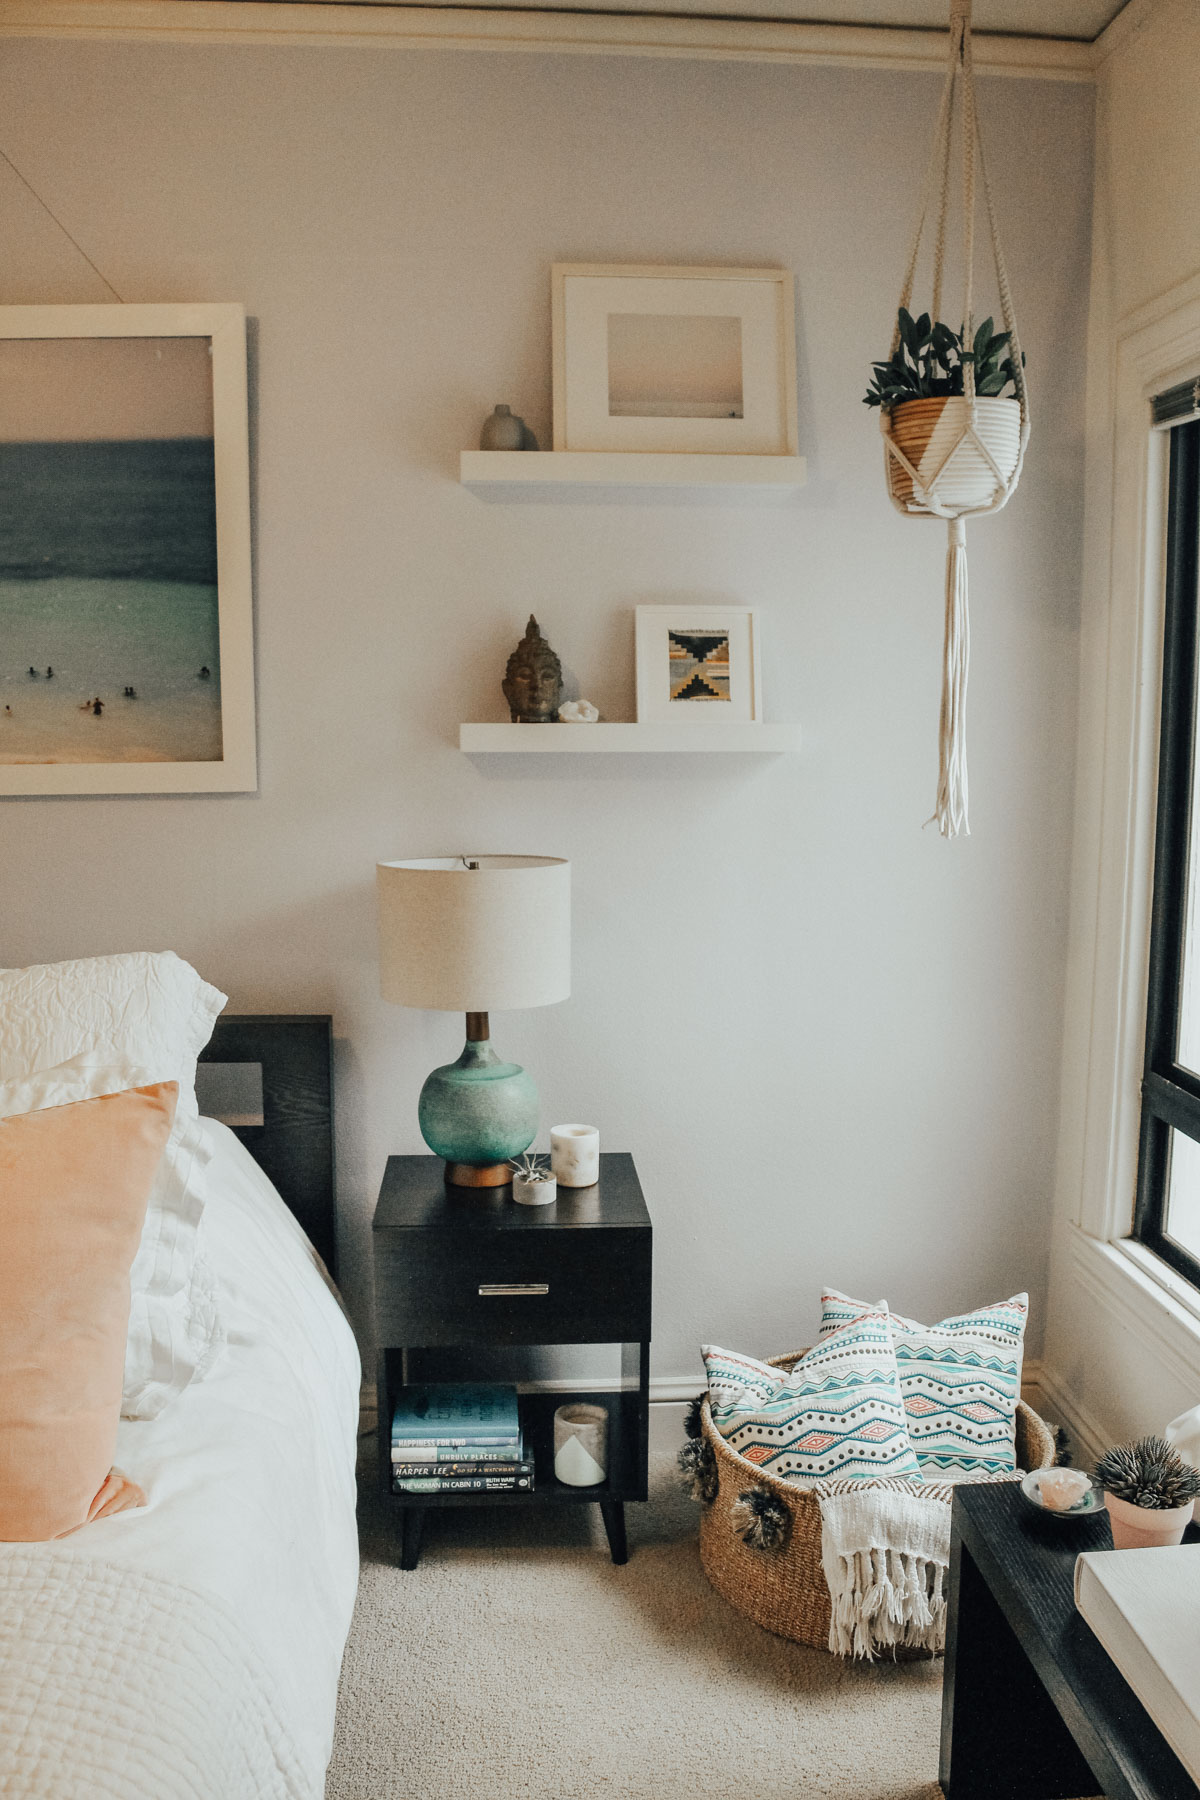 How to Style Plants in Small Spaces - Advice from a Twenty ...